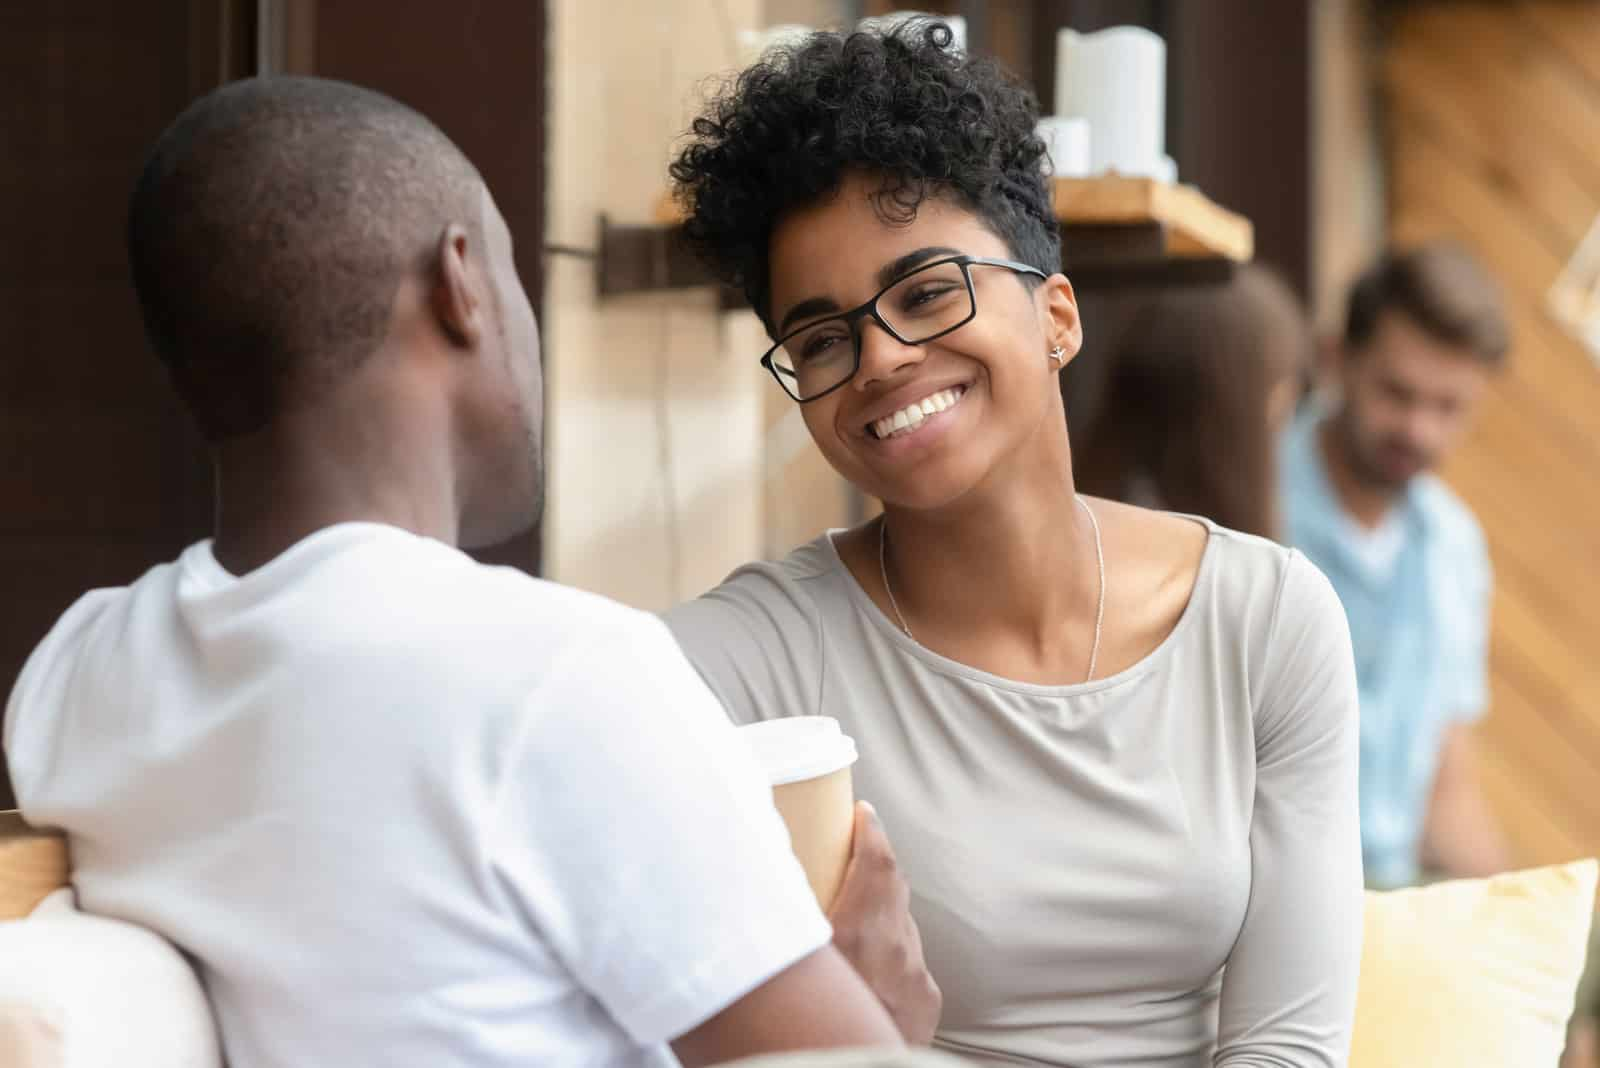 a smiling couple sitting drinking coffee and talking